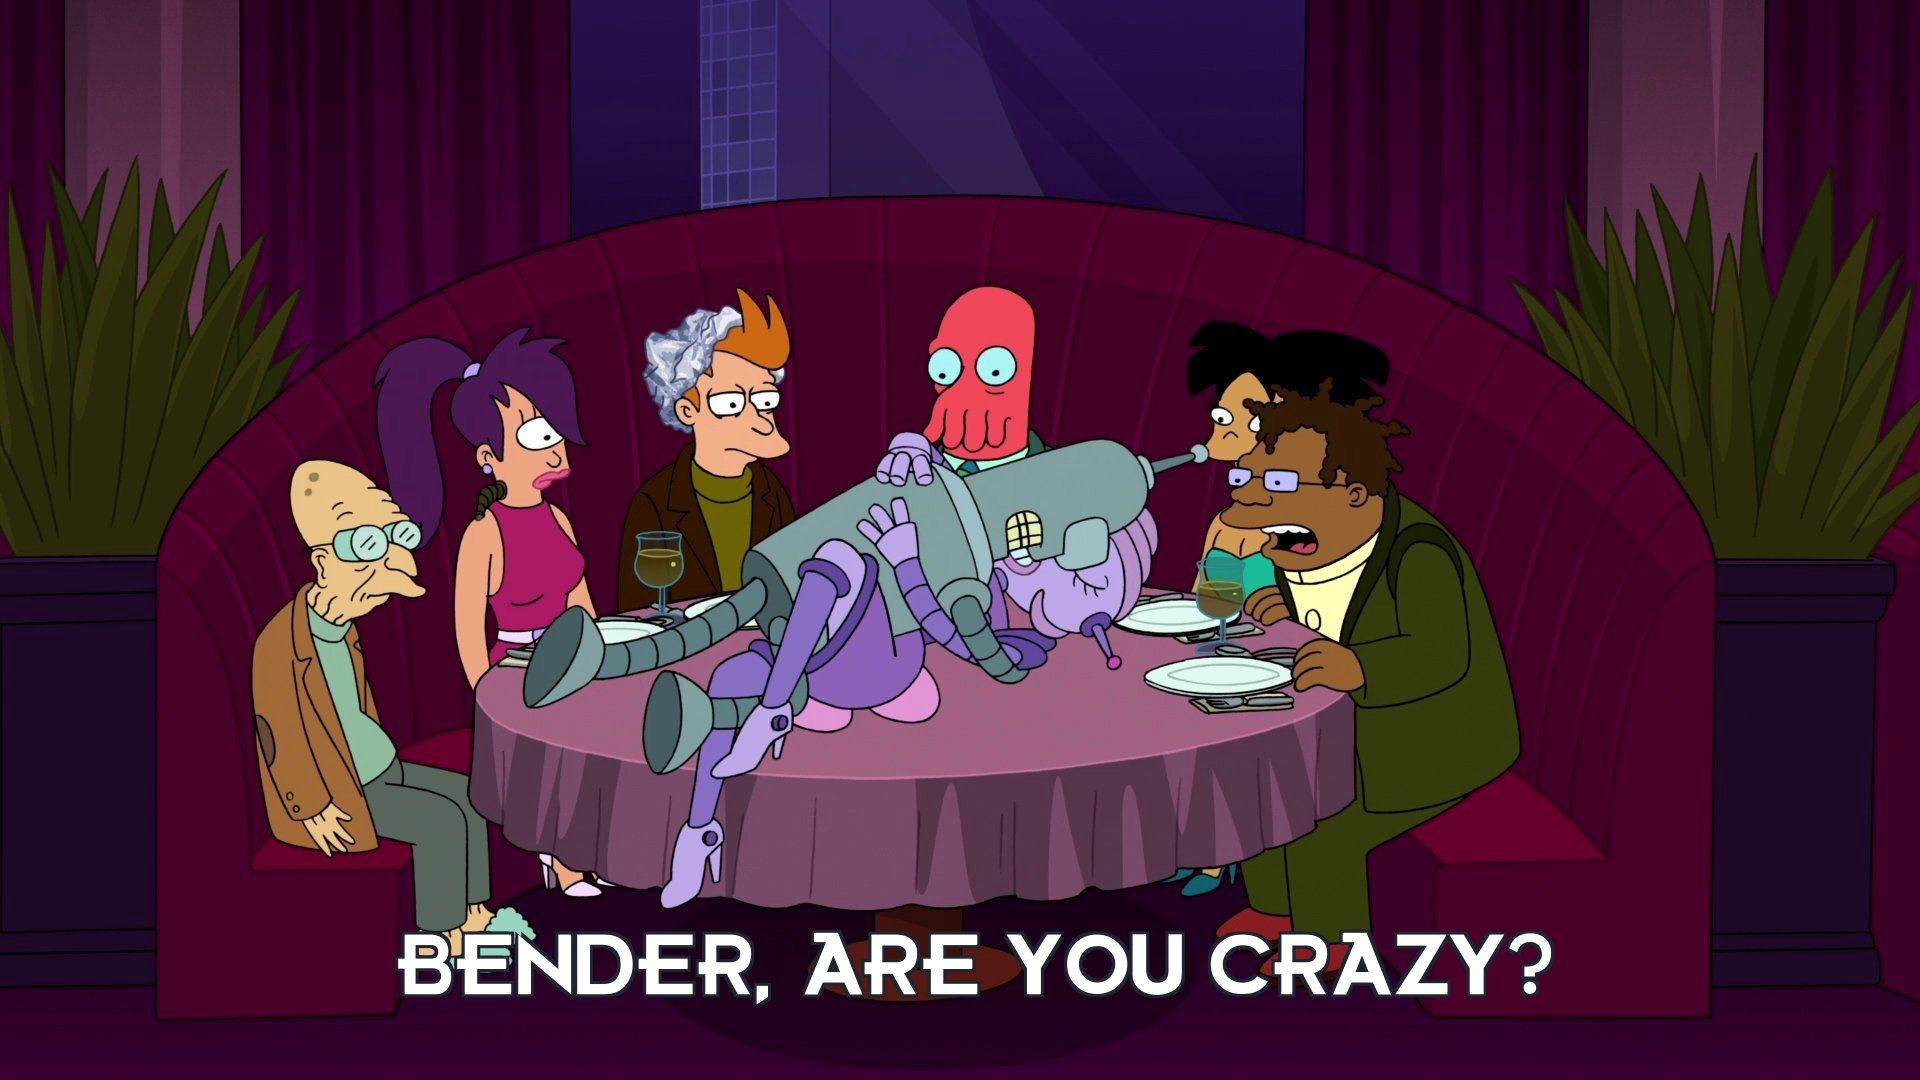 Hermes Conrad: Bender, are you crazy?